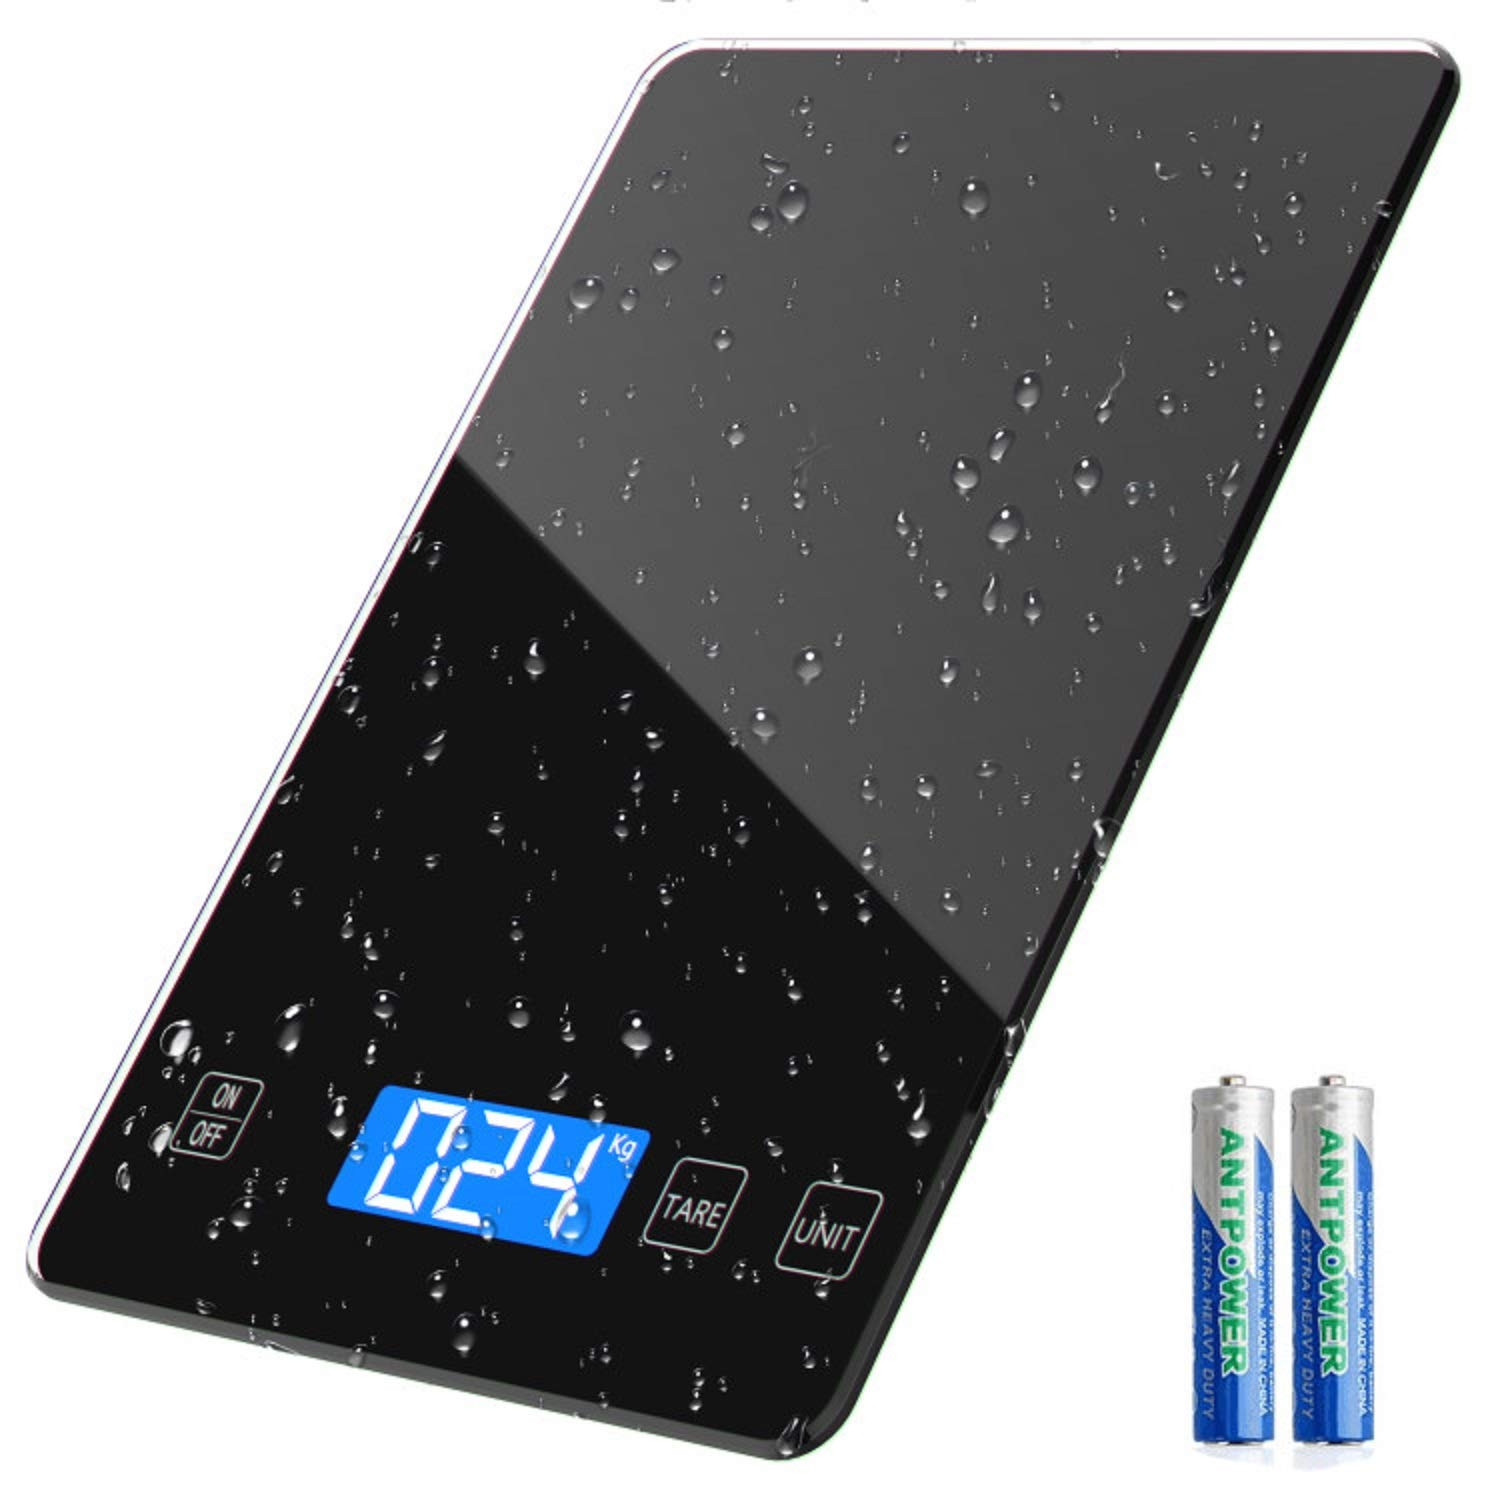 Food Scale, 22lb Digital Kitchen Scale Weight Grams and oz Electronic Scale for Cooking Baking, 1g/0.1oz Precise Graduation, Sleek Tempered Glass Platform with LED Display (Black)